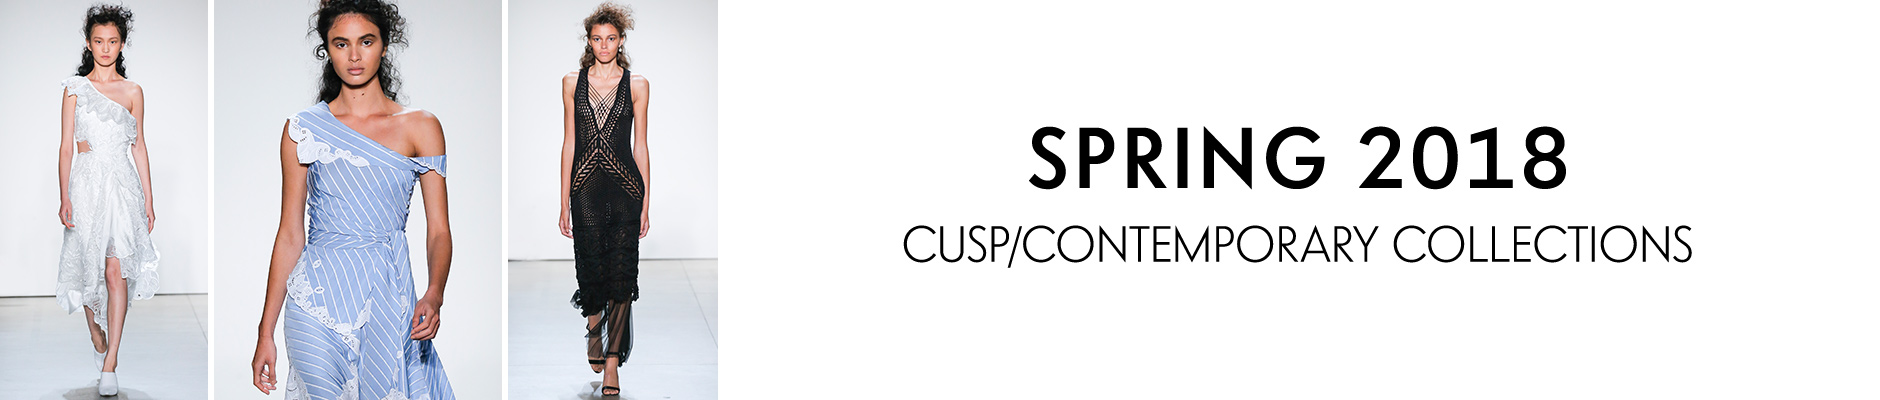 Magazine: CUSP / Contemporary - Spring Launch